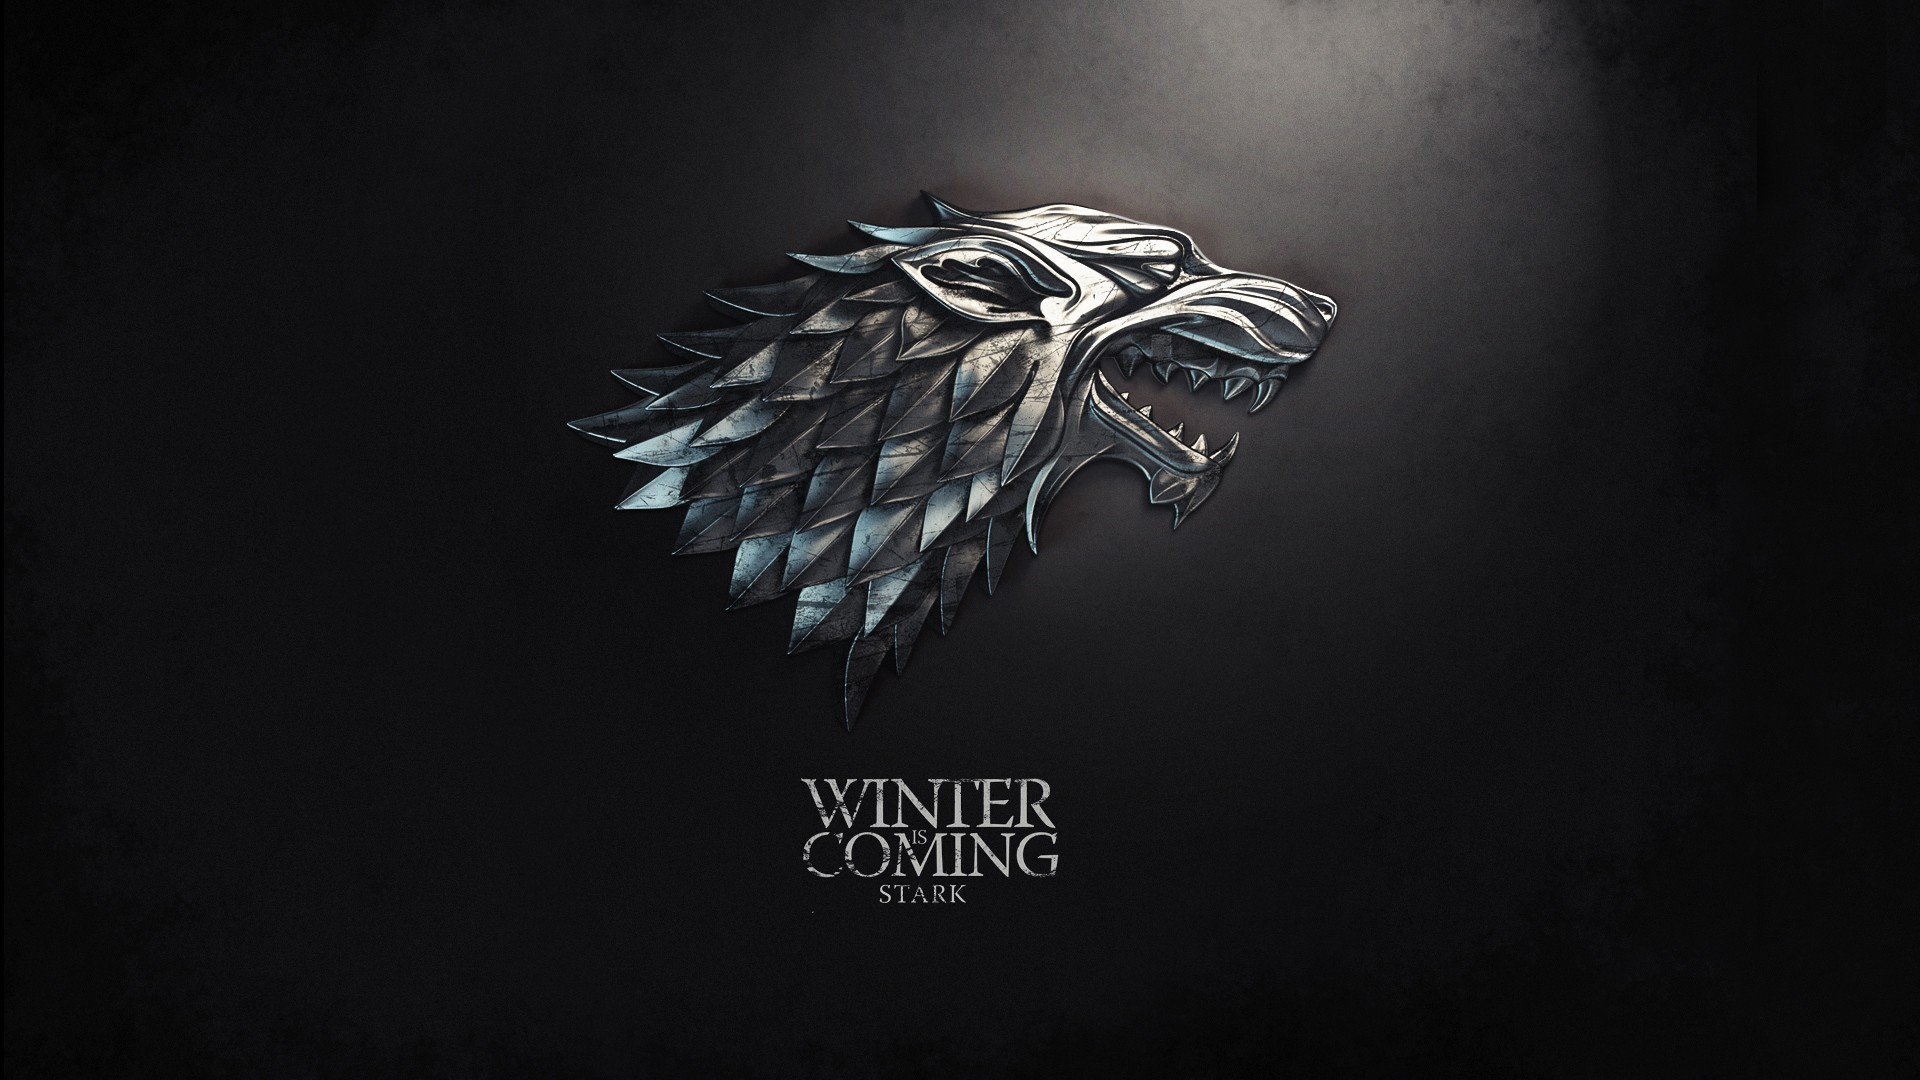 winter Game of Thrones A Song of Ice and Fire TV series Winter is Coming House Stark wolves